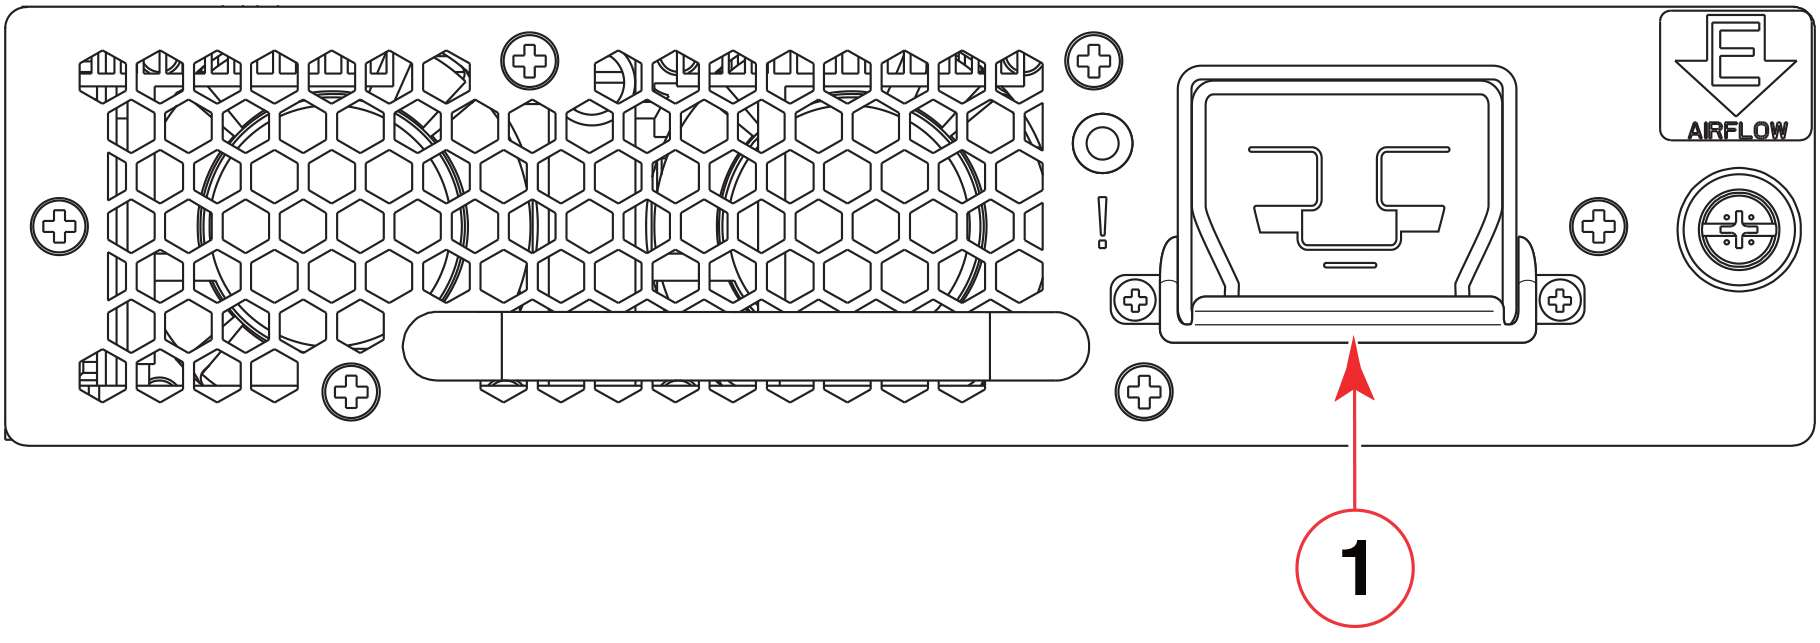 Fuse Box Diagram For 2001 Mazda 626 Html